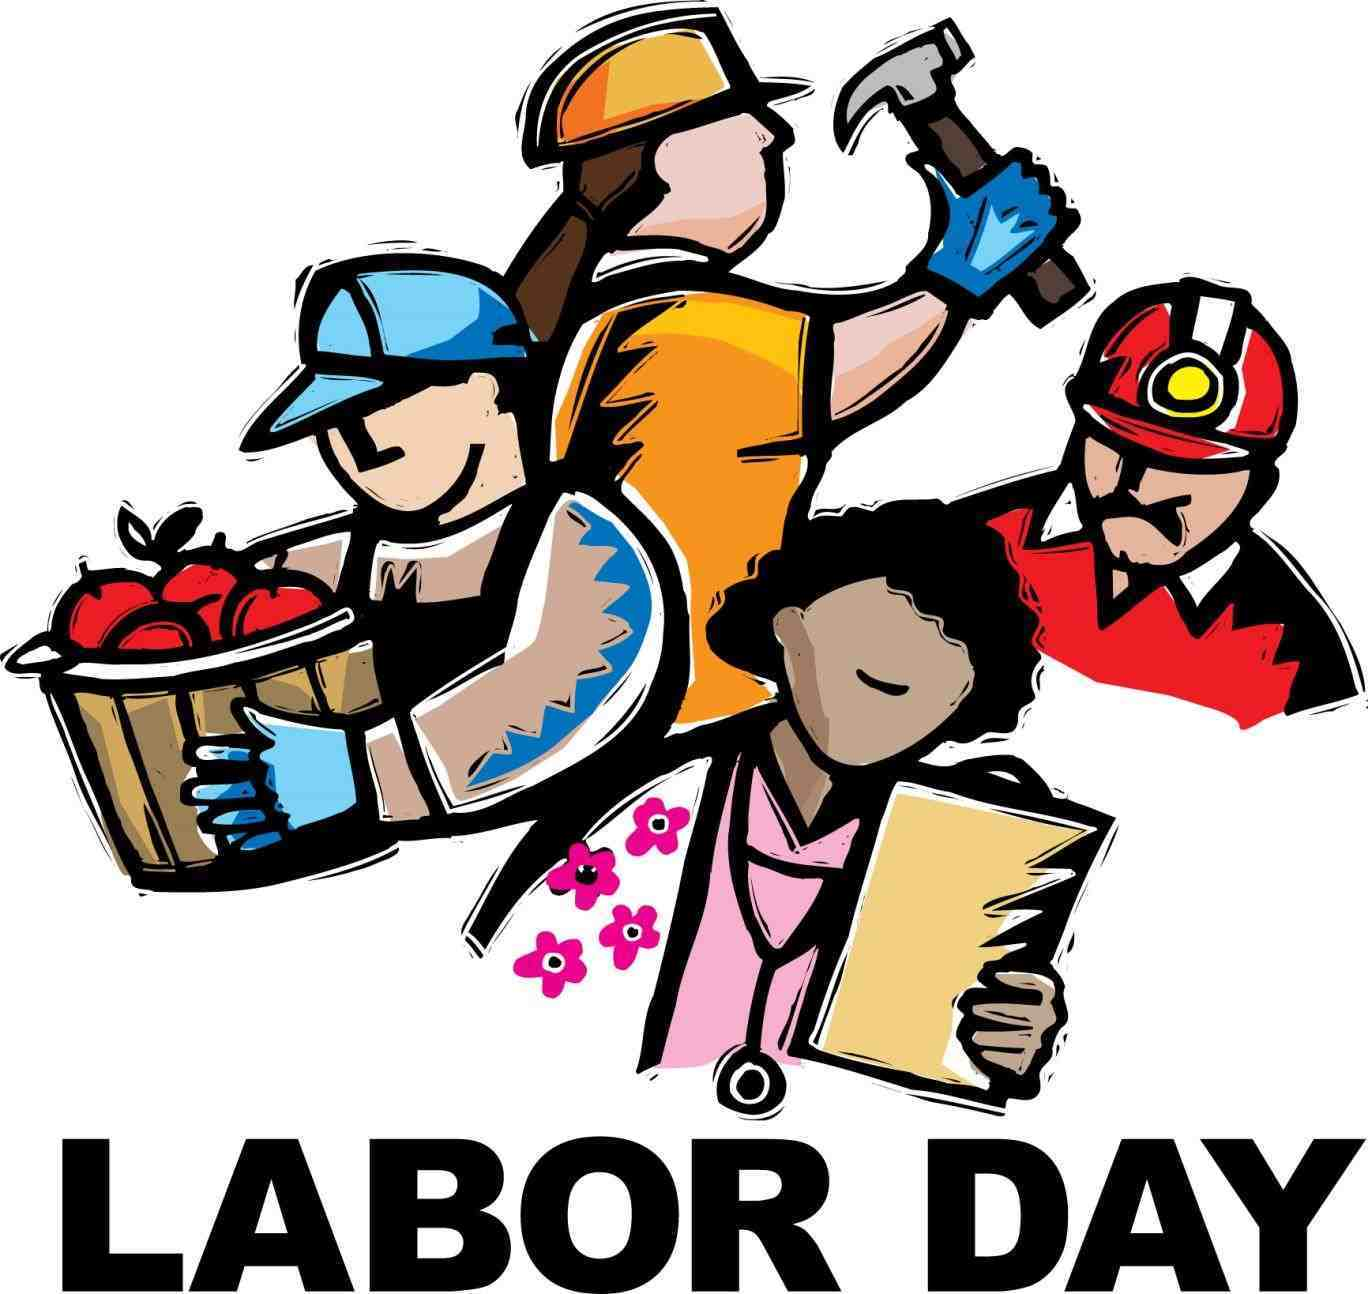 319 Labor Day free clipart.